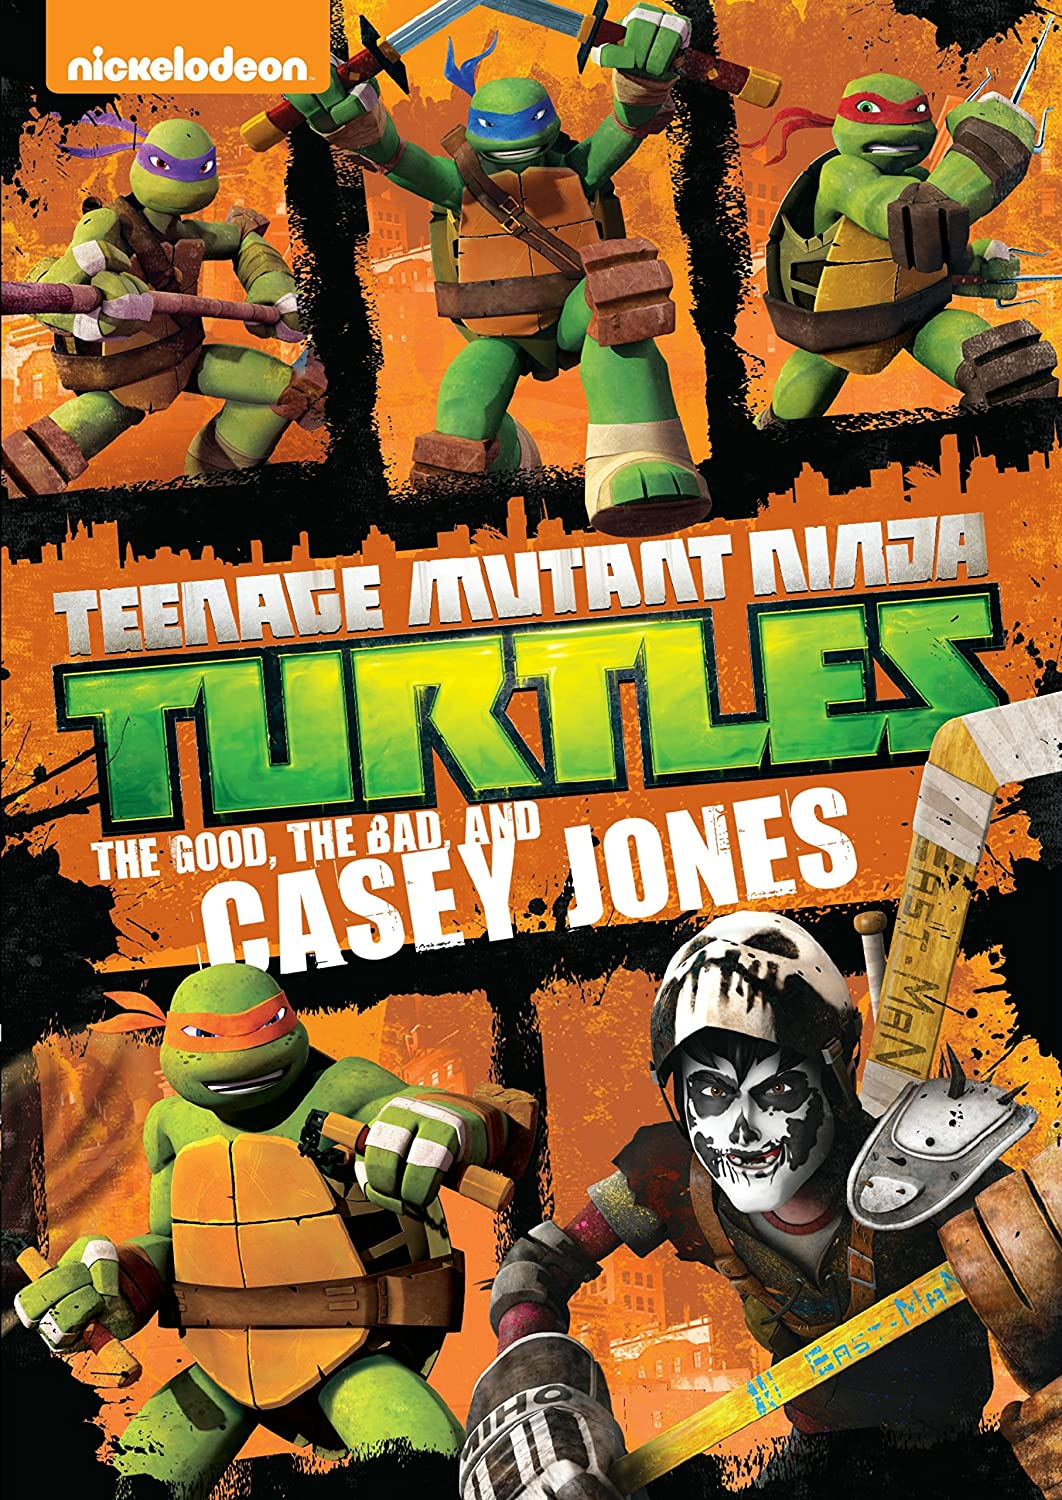 http://www.amazon.com/Teenage-Mutant-Ninja-Turtles-Casey/dp/B00J2T18XS/